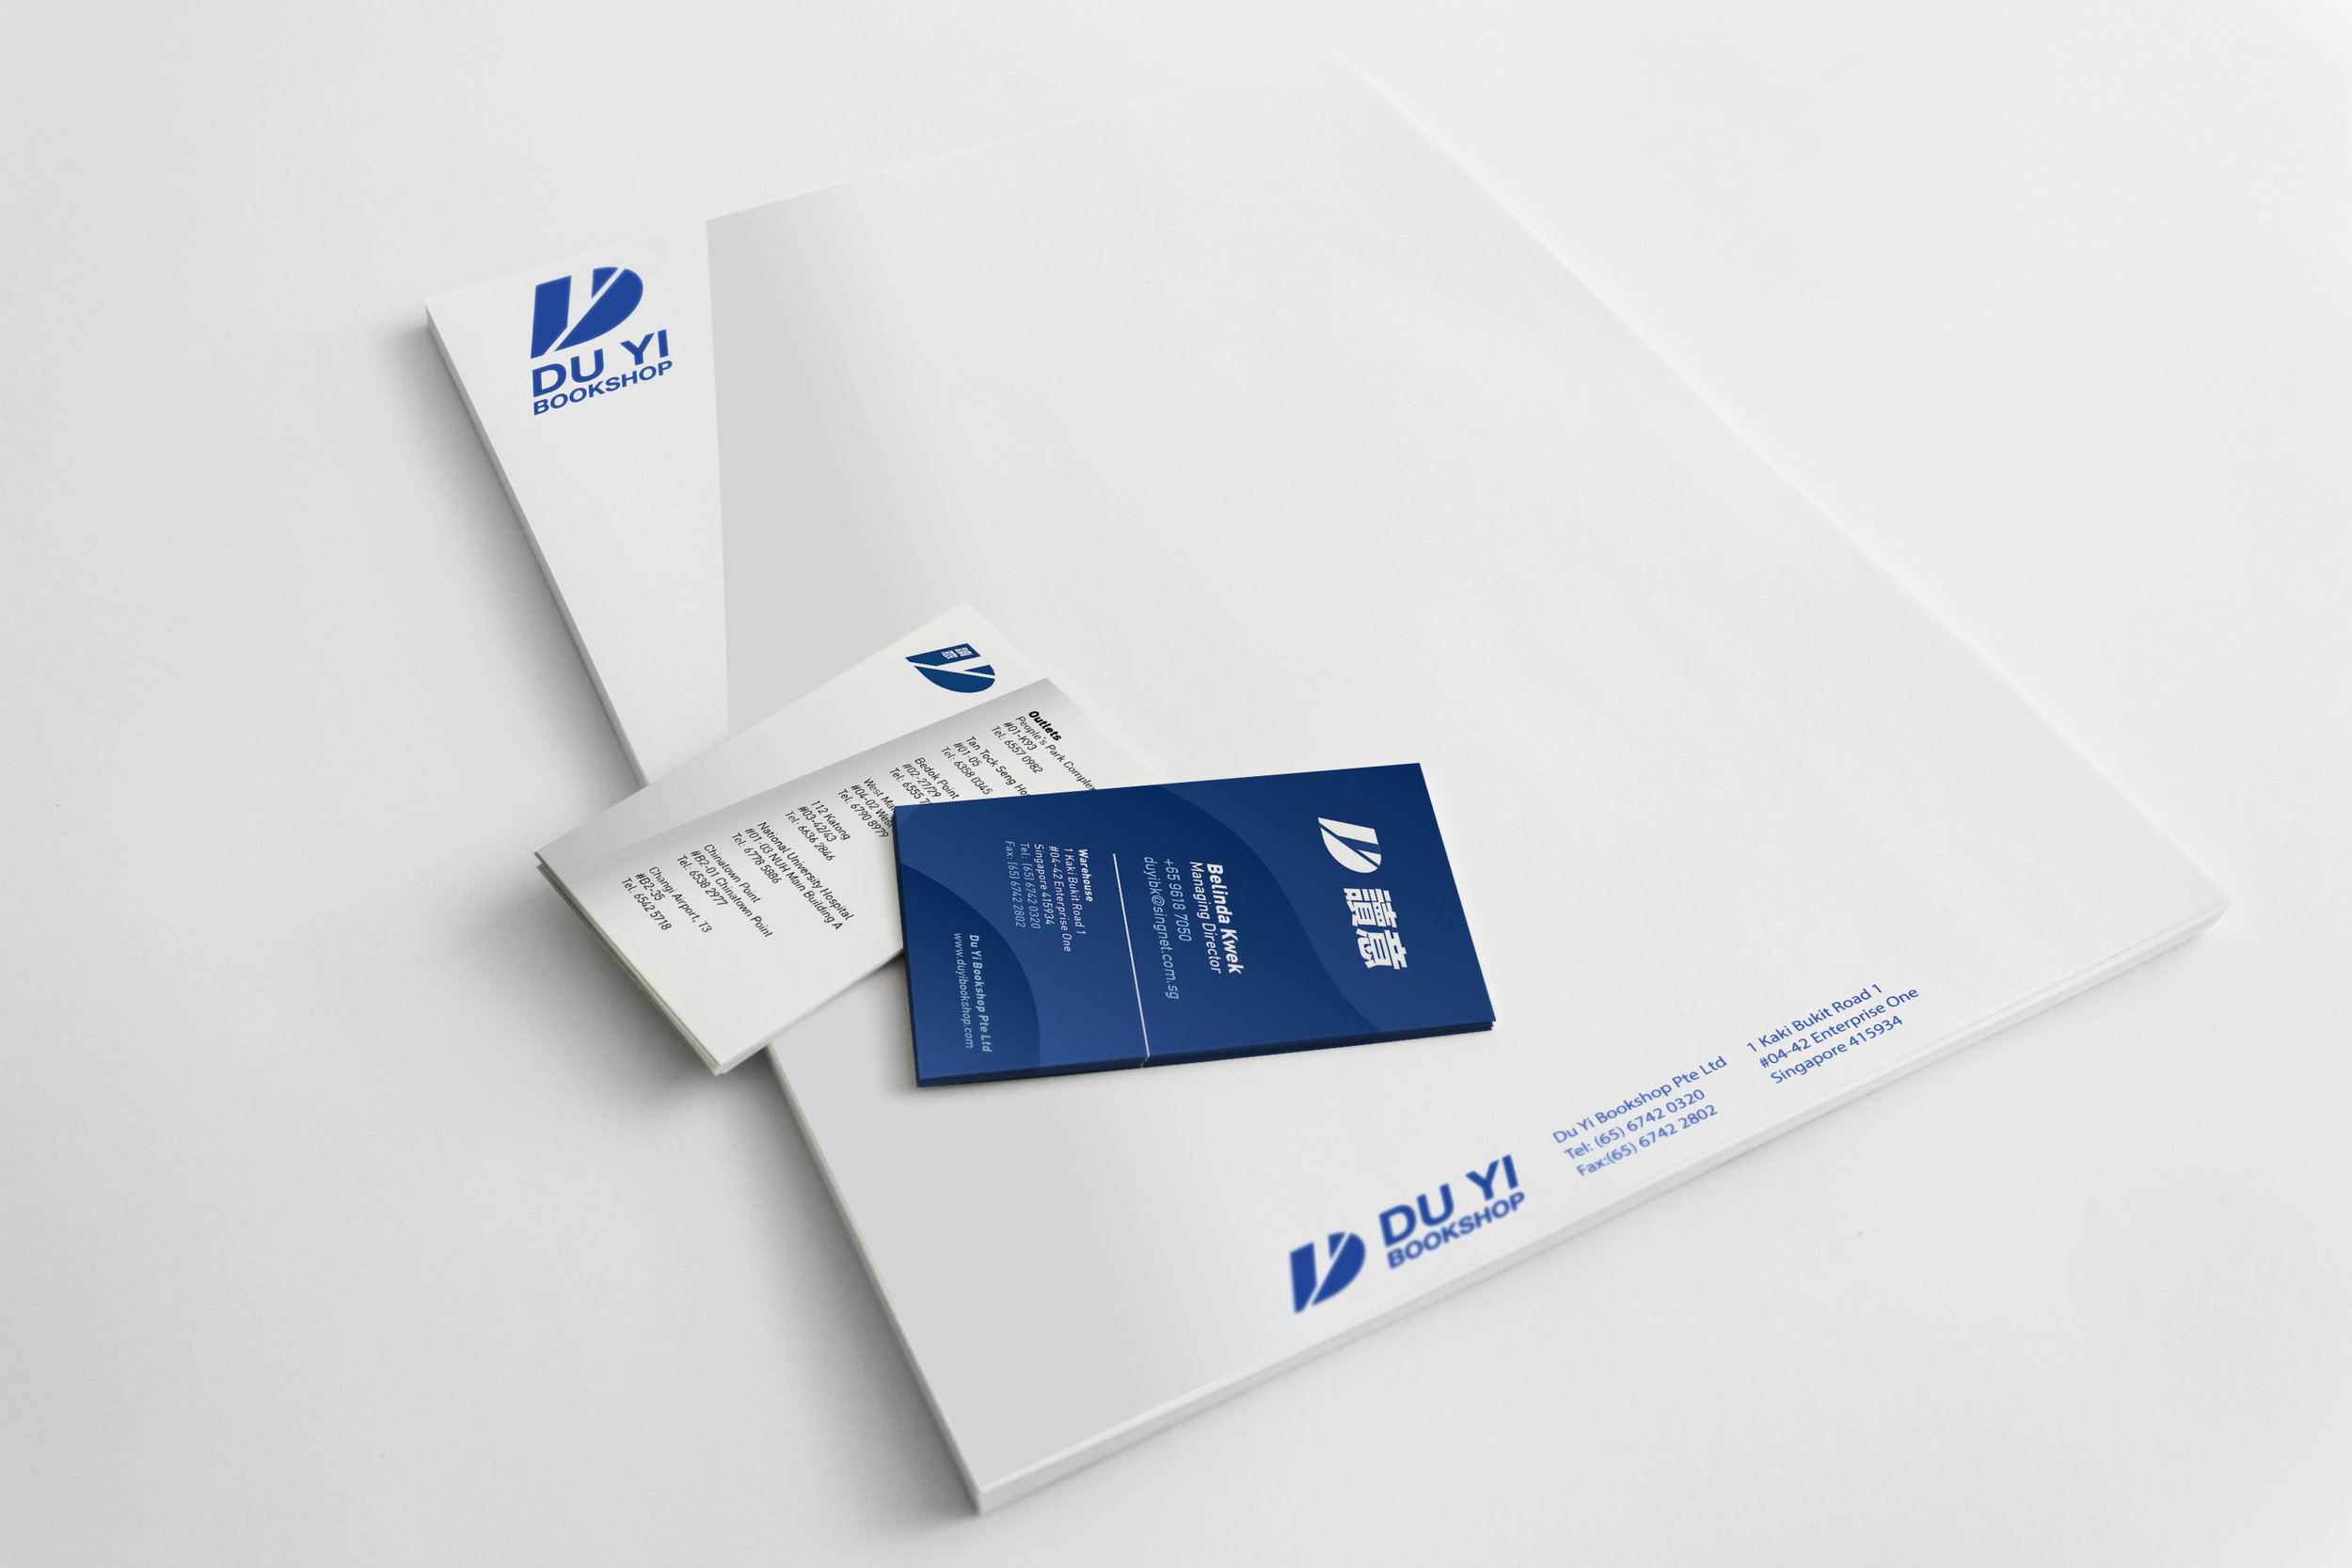 Du yi bookshop stratosphere creative a4 letterhead business cardsg reheart Image collections